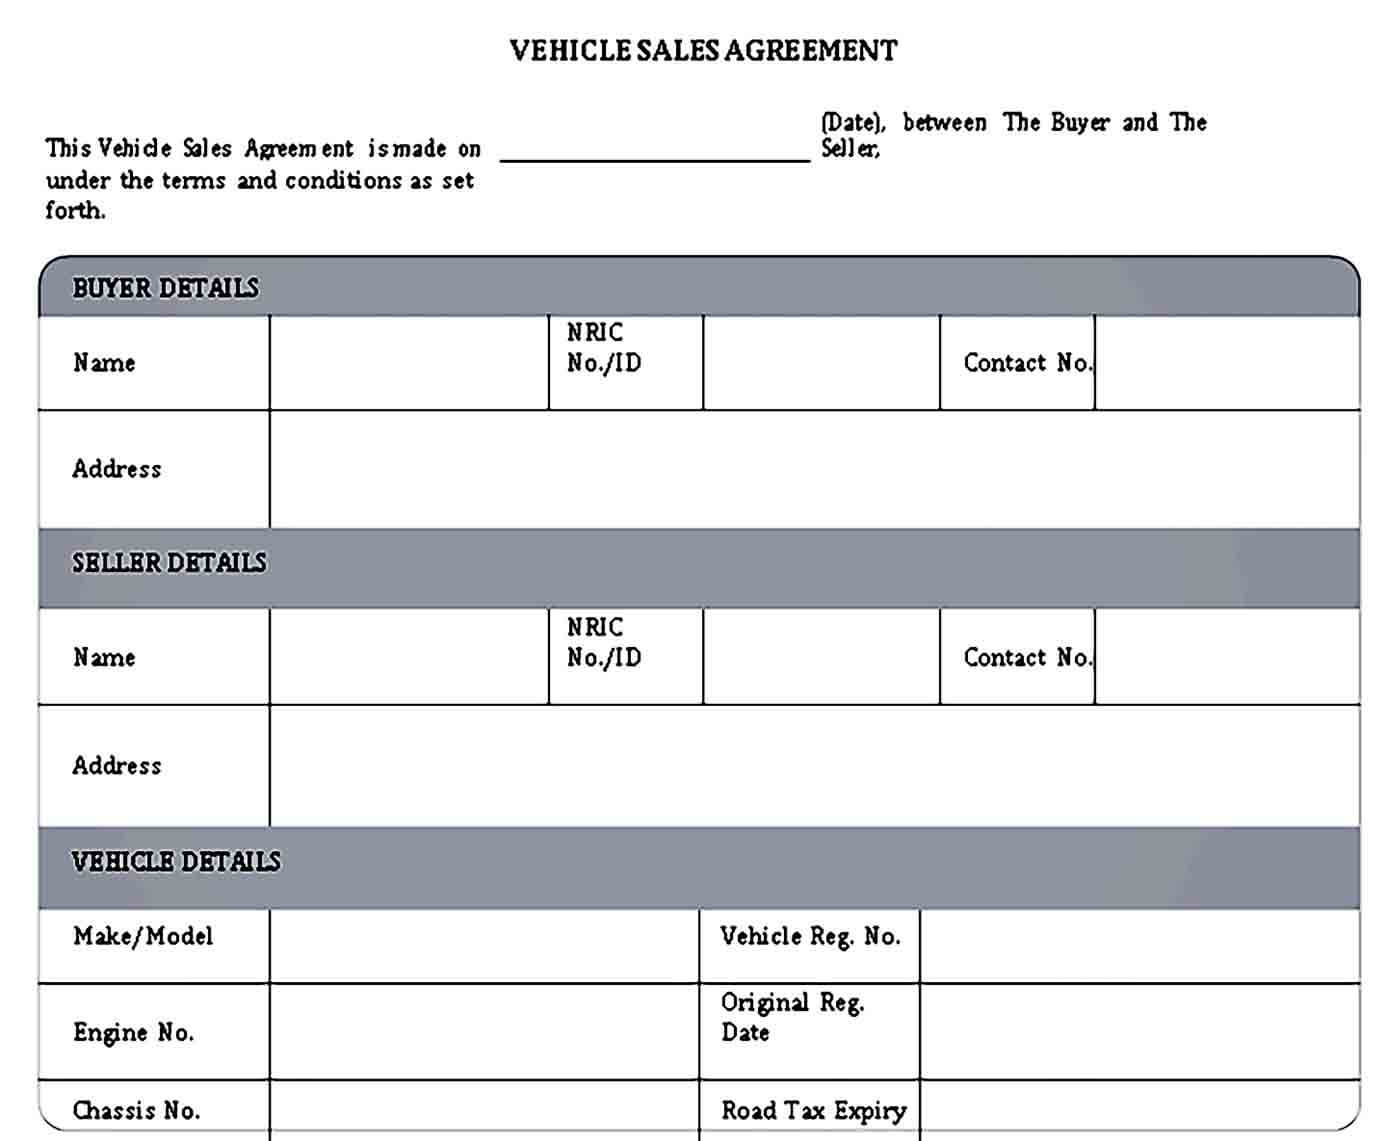 Vehicle Sales Agreement Template